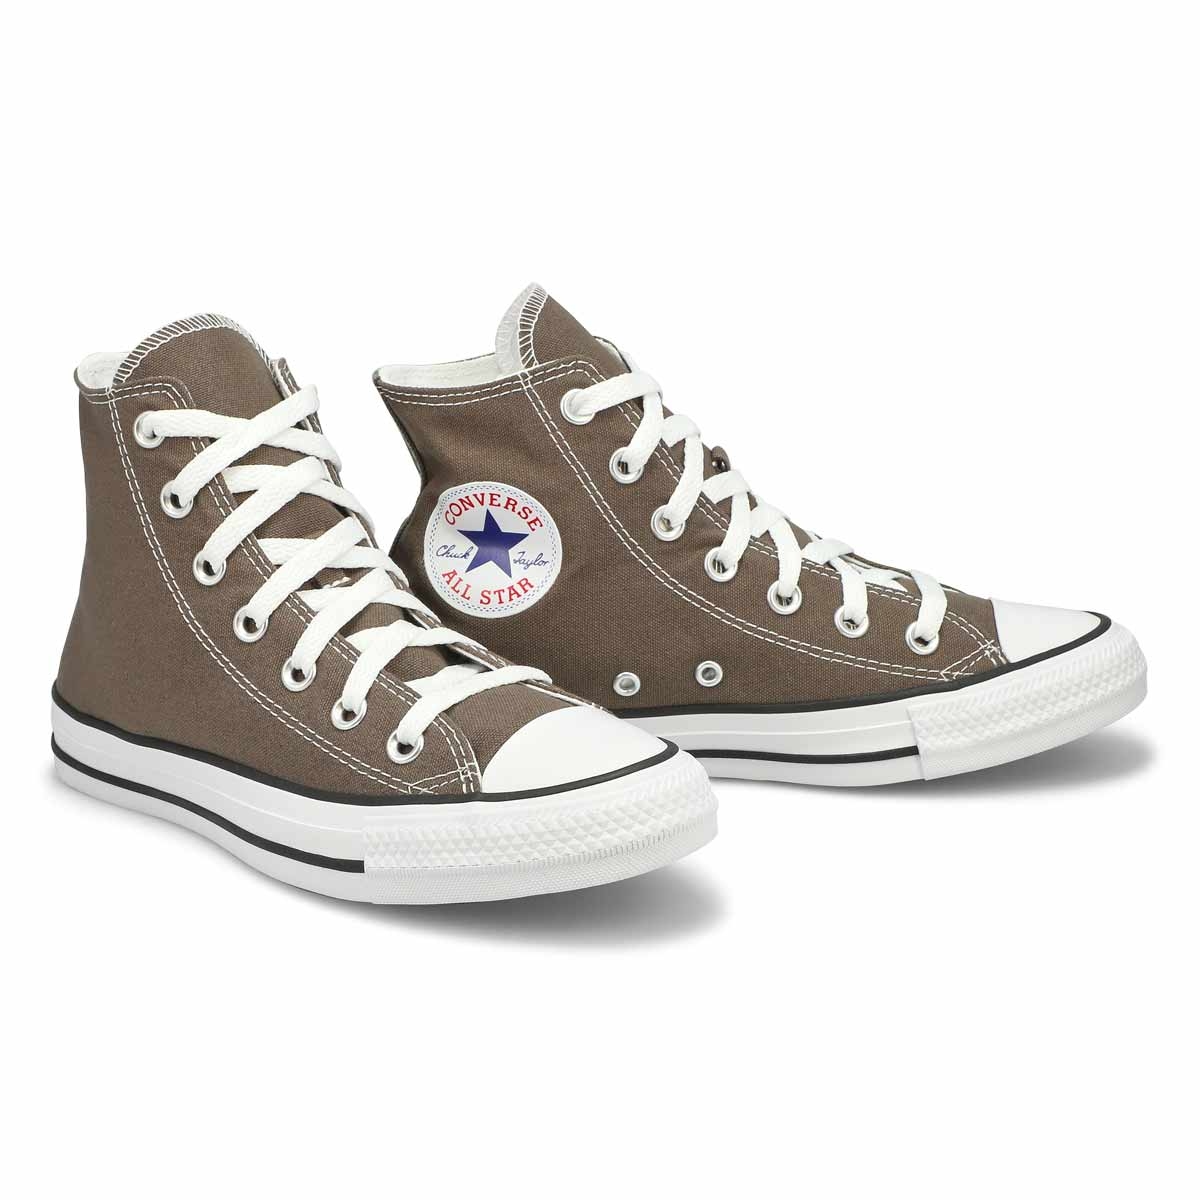 Lds CT All Star Core Hi charc high top